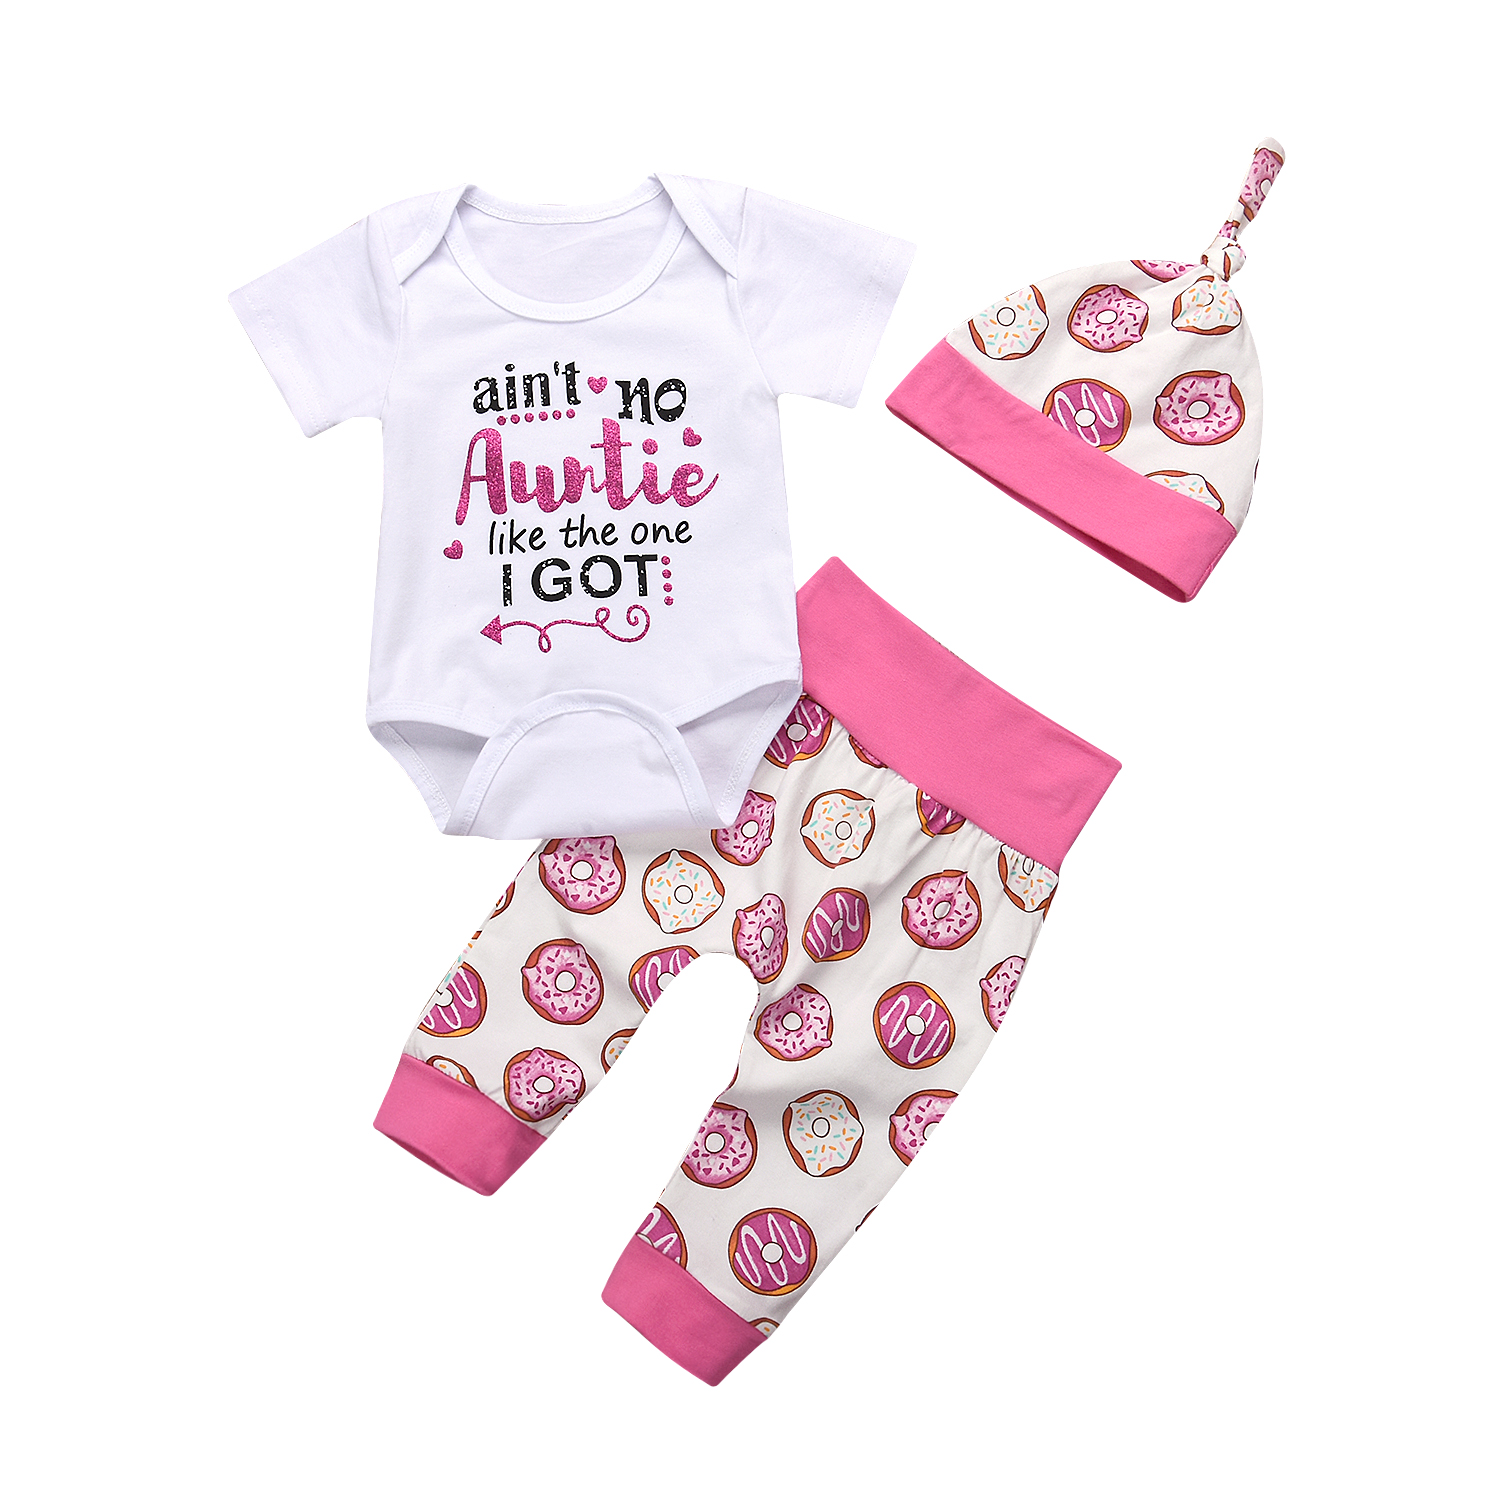 Summer Baby Girl Clothes Newborn Kids Baby Girl 3pcs Set Romper+ Long Pants +Hat Printed Outfit Set